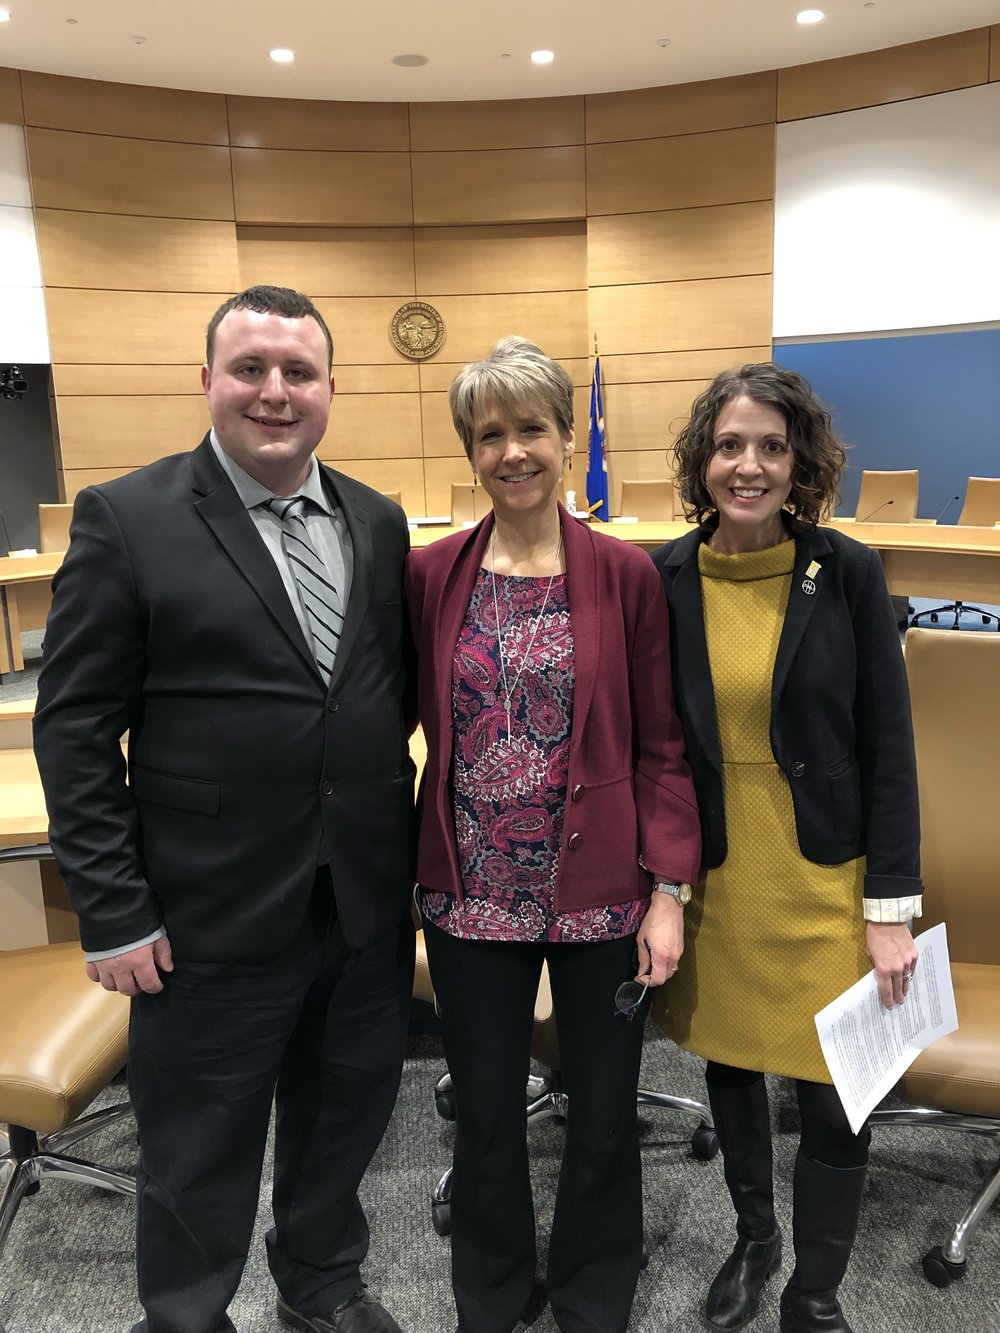 Senate E-12 Committee, February 6, 2019 hearing on universal screening bill with Reading Center alum Nick Keller, Executive Director Cindy Russell, and Decoding Dyslexia Minnesota chair Rachel Berger.